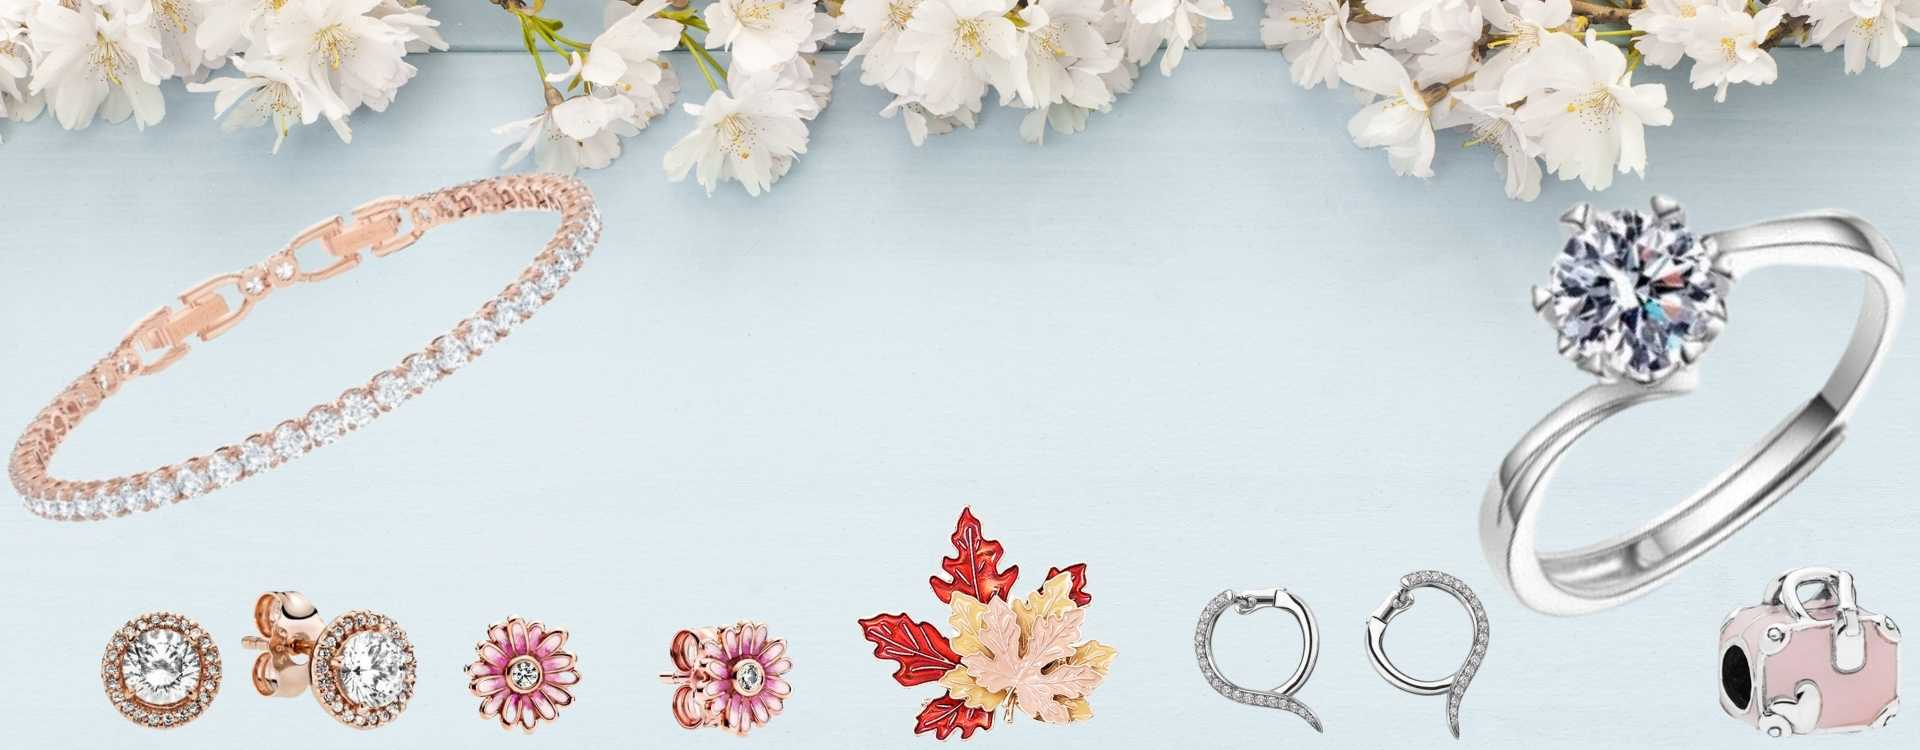 Custom Jewelry Wholesale Manufacturer and Supplier in China